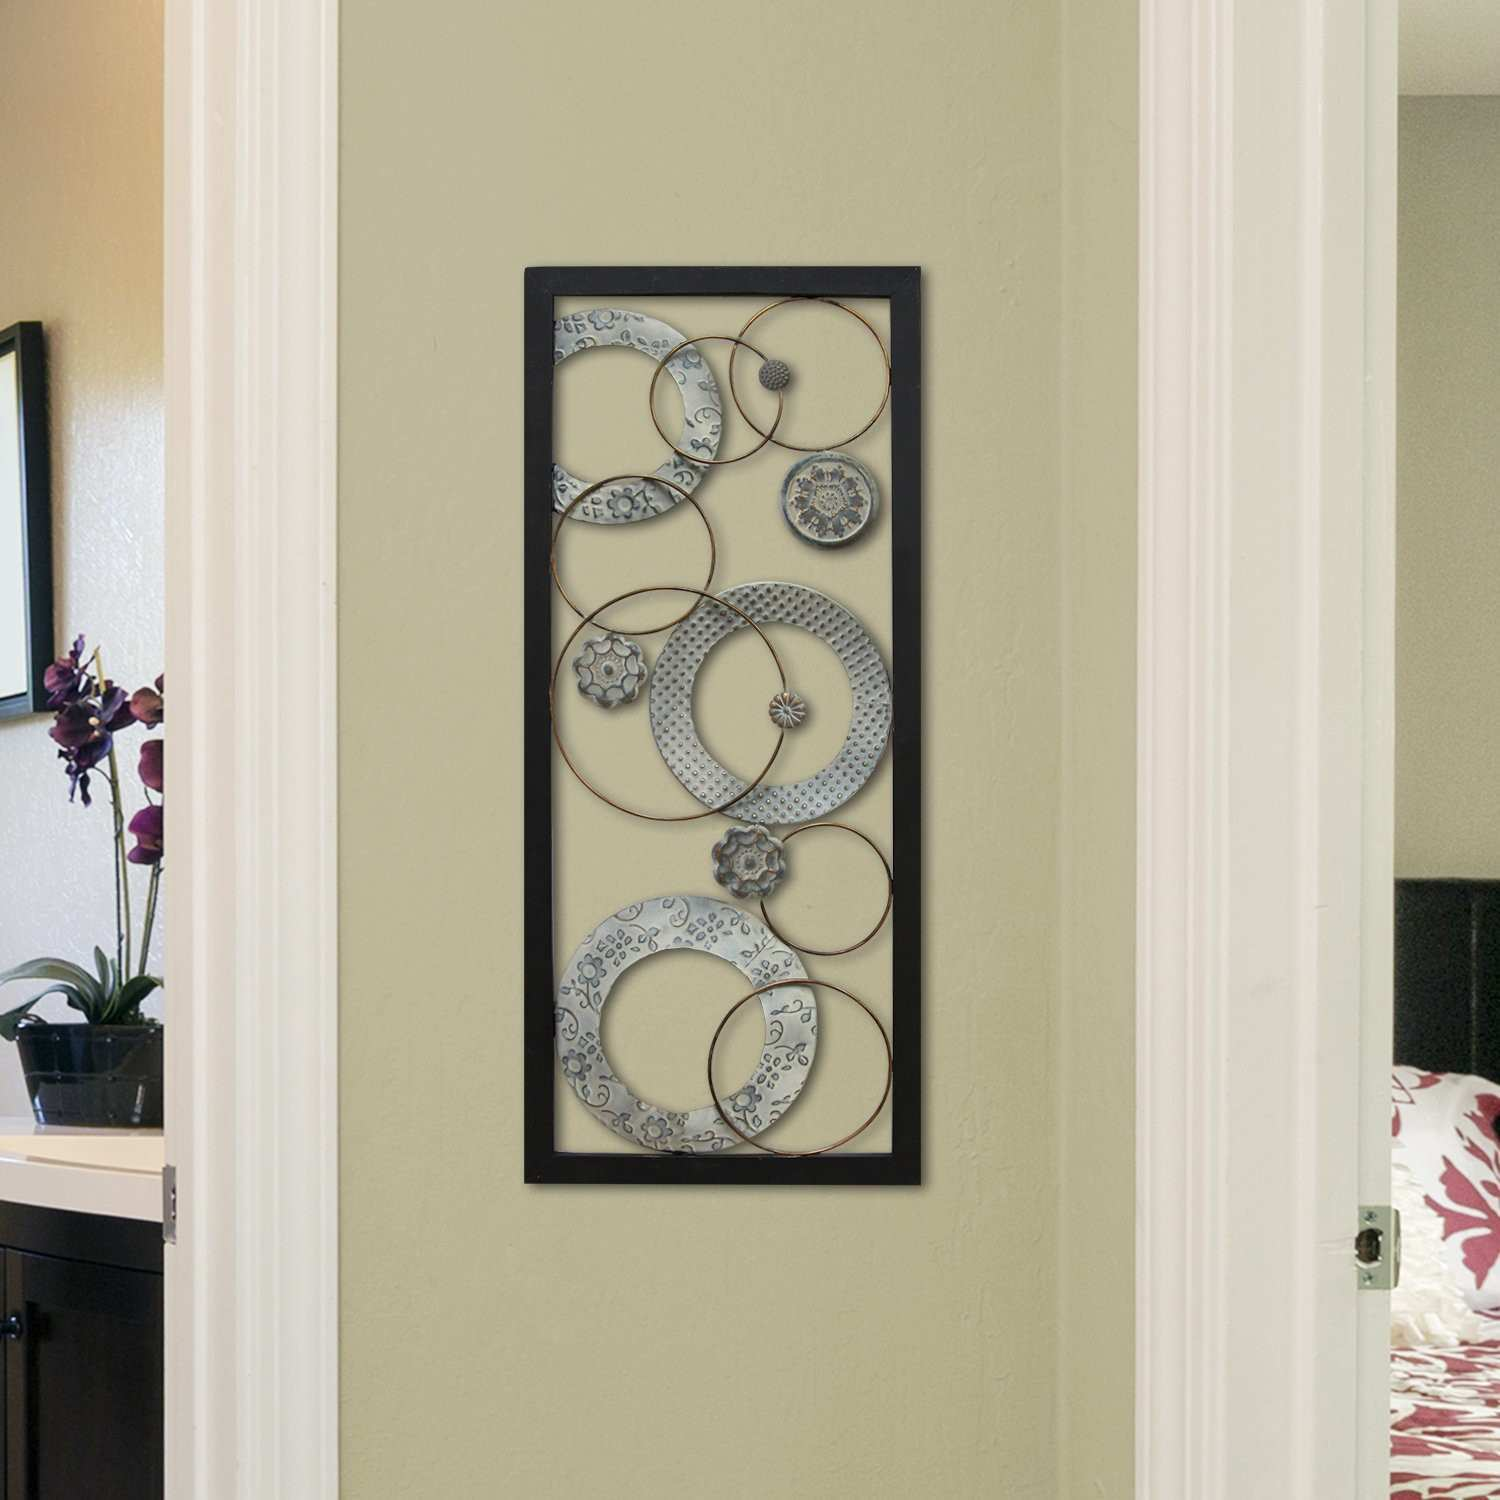 Stratton Home Decor Stamped Circles Panel Wall Décor